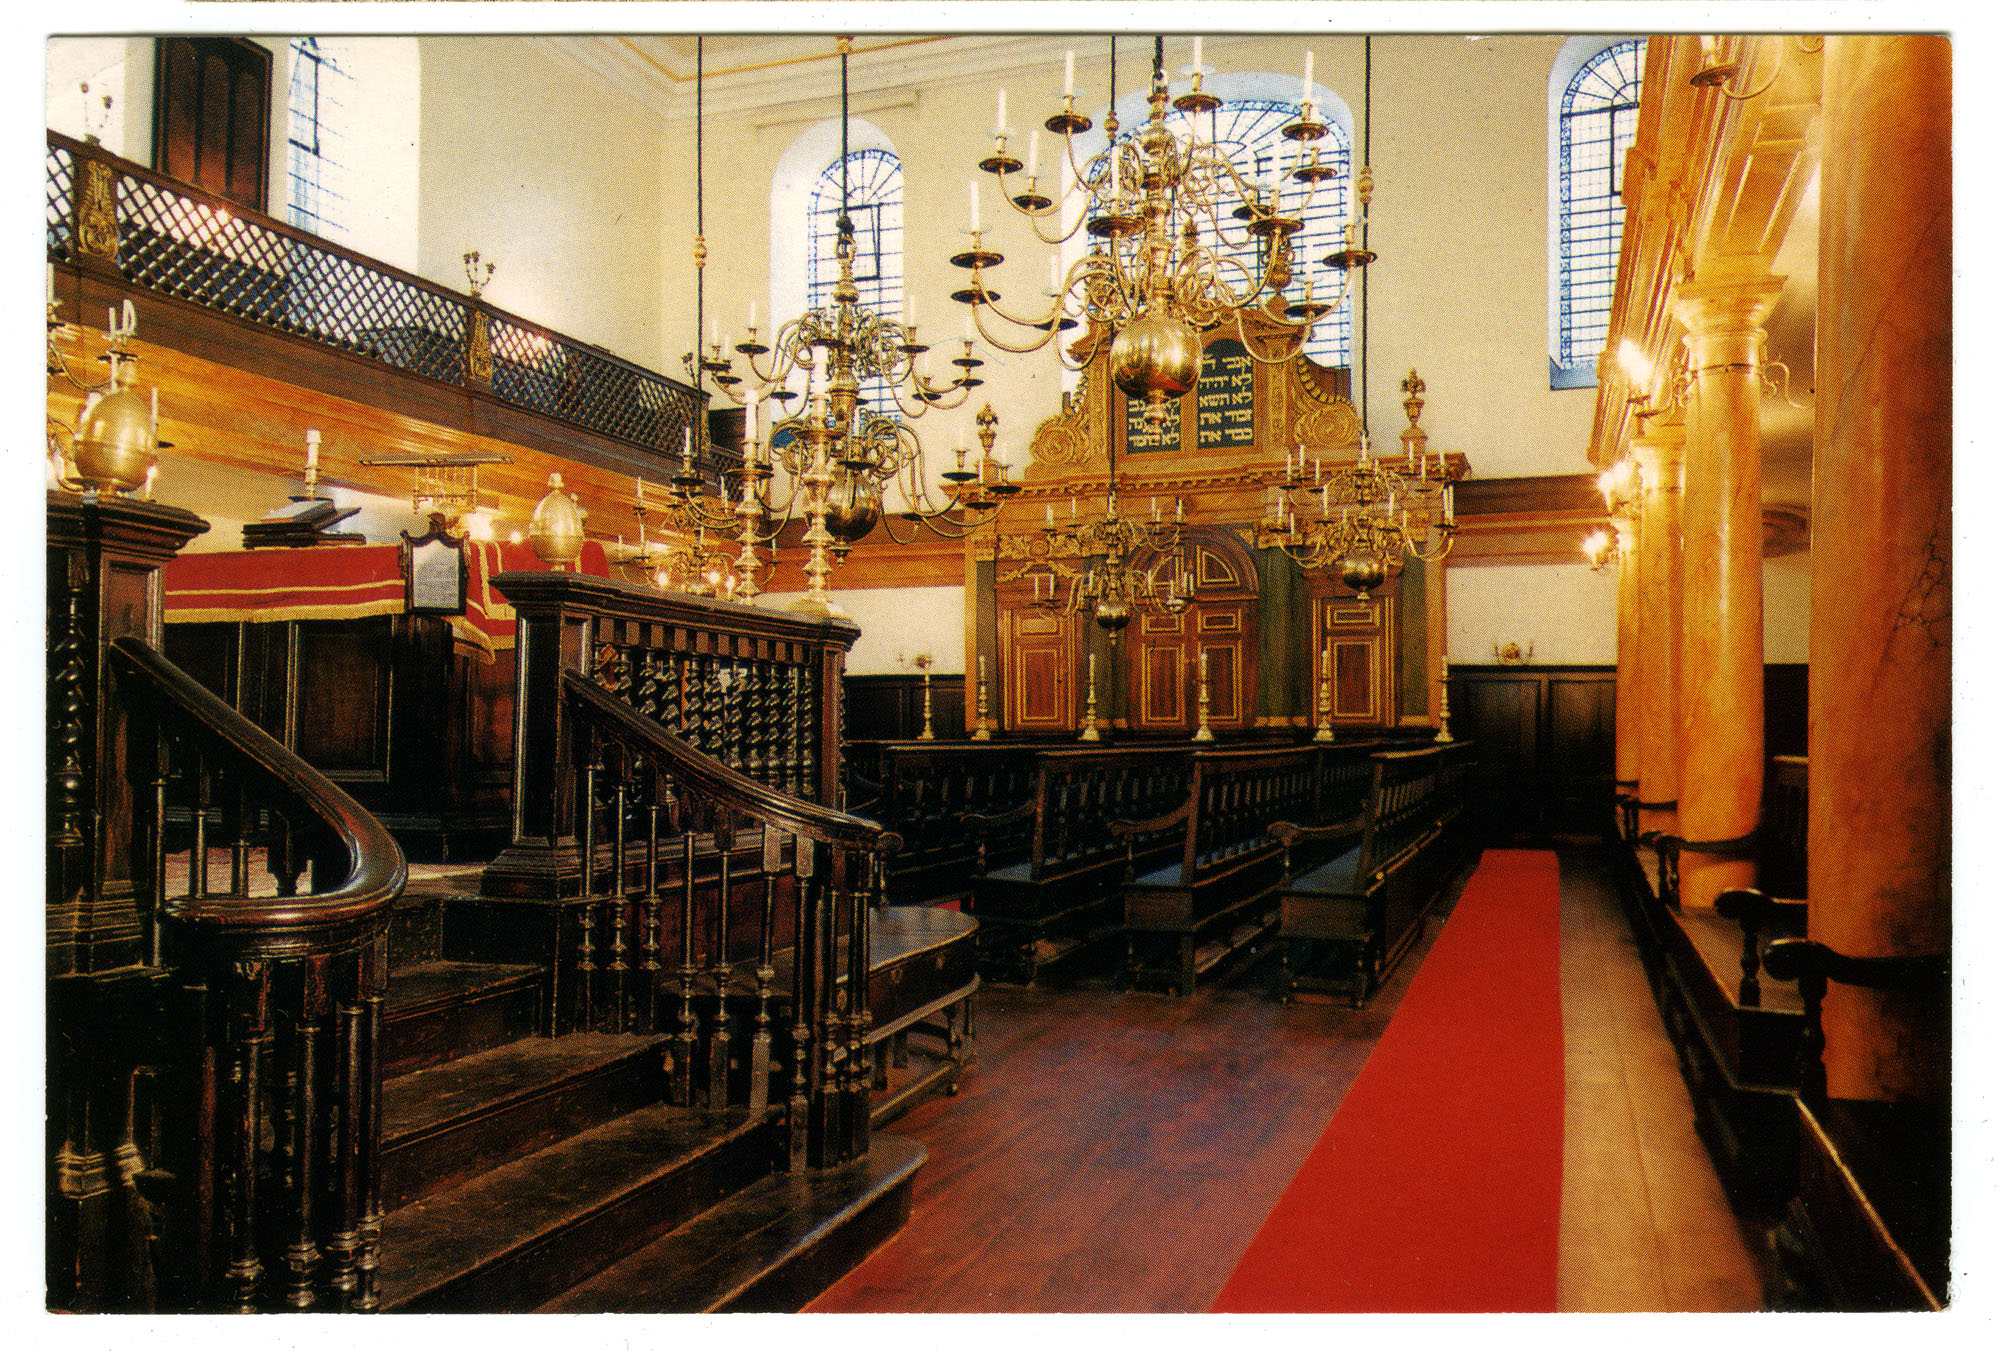 Interior of the Spanish and Portuguese Bevis Marks Synagogue, London